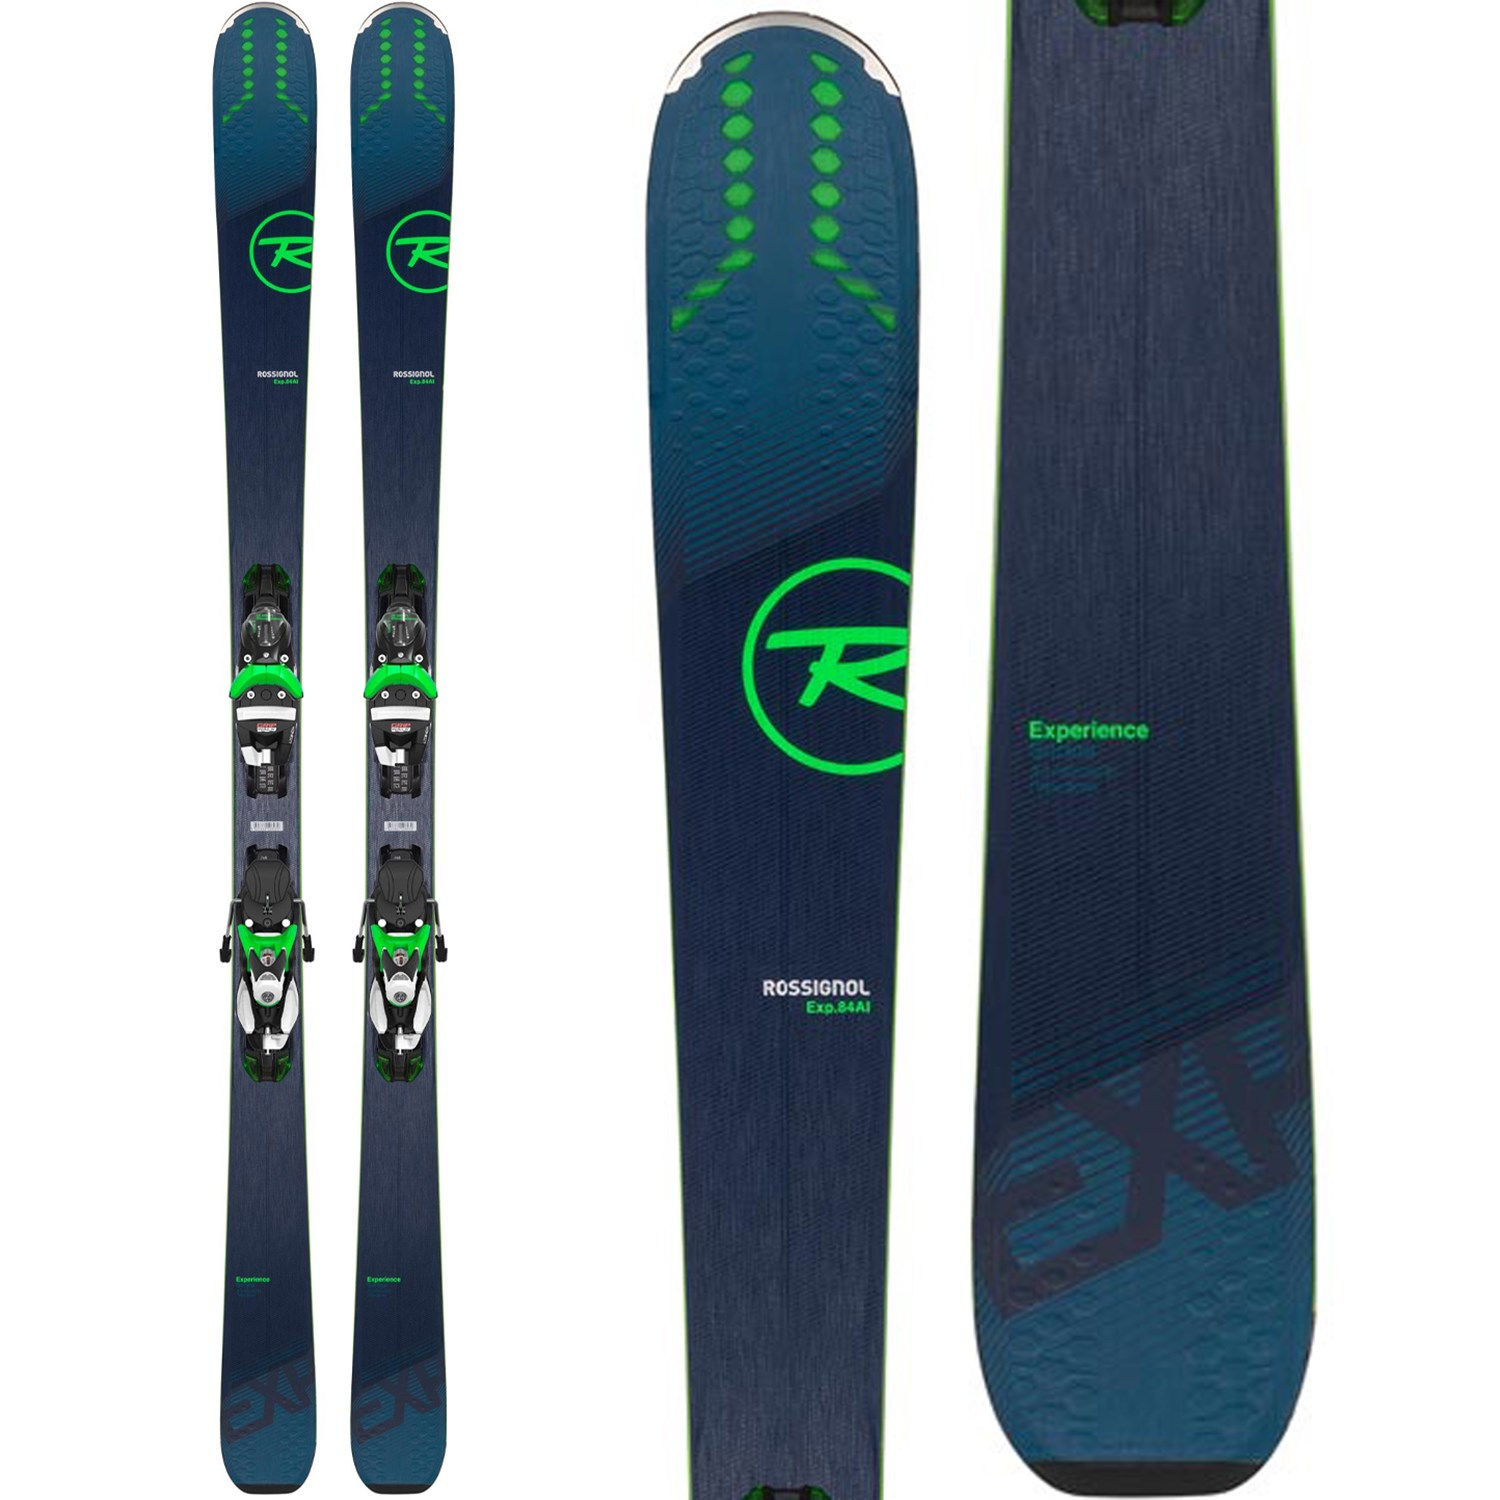 2020! Look SPX 12 Konect Bindings All-Mountain NEW ROSSIGNOL Experience 84 AI